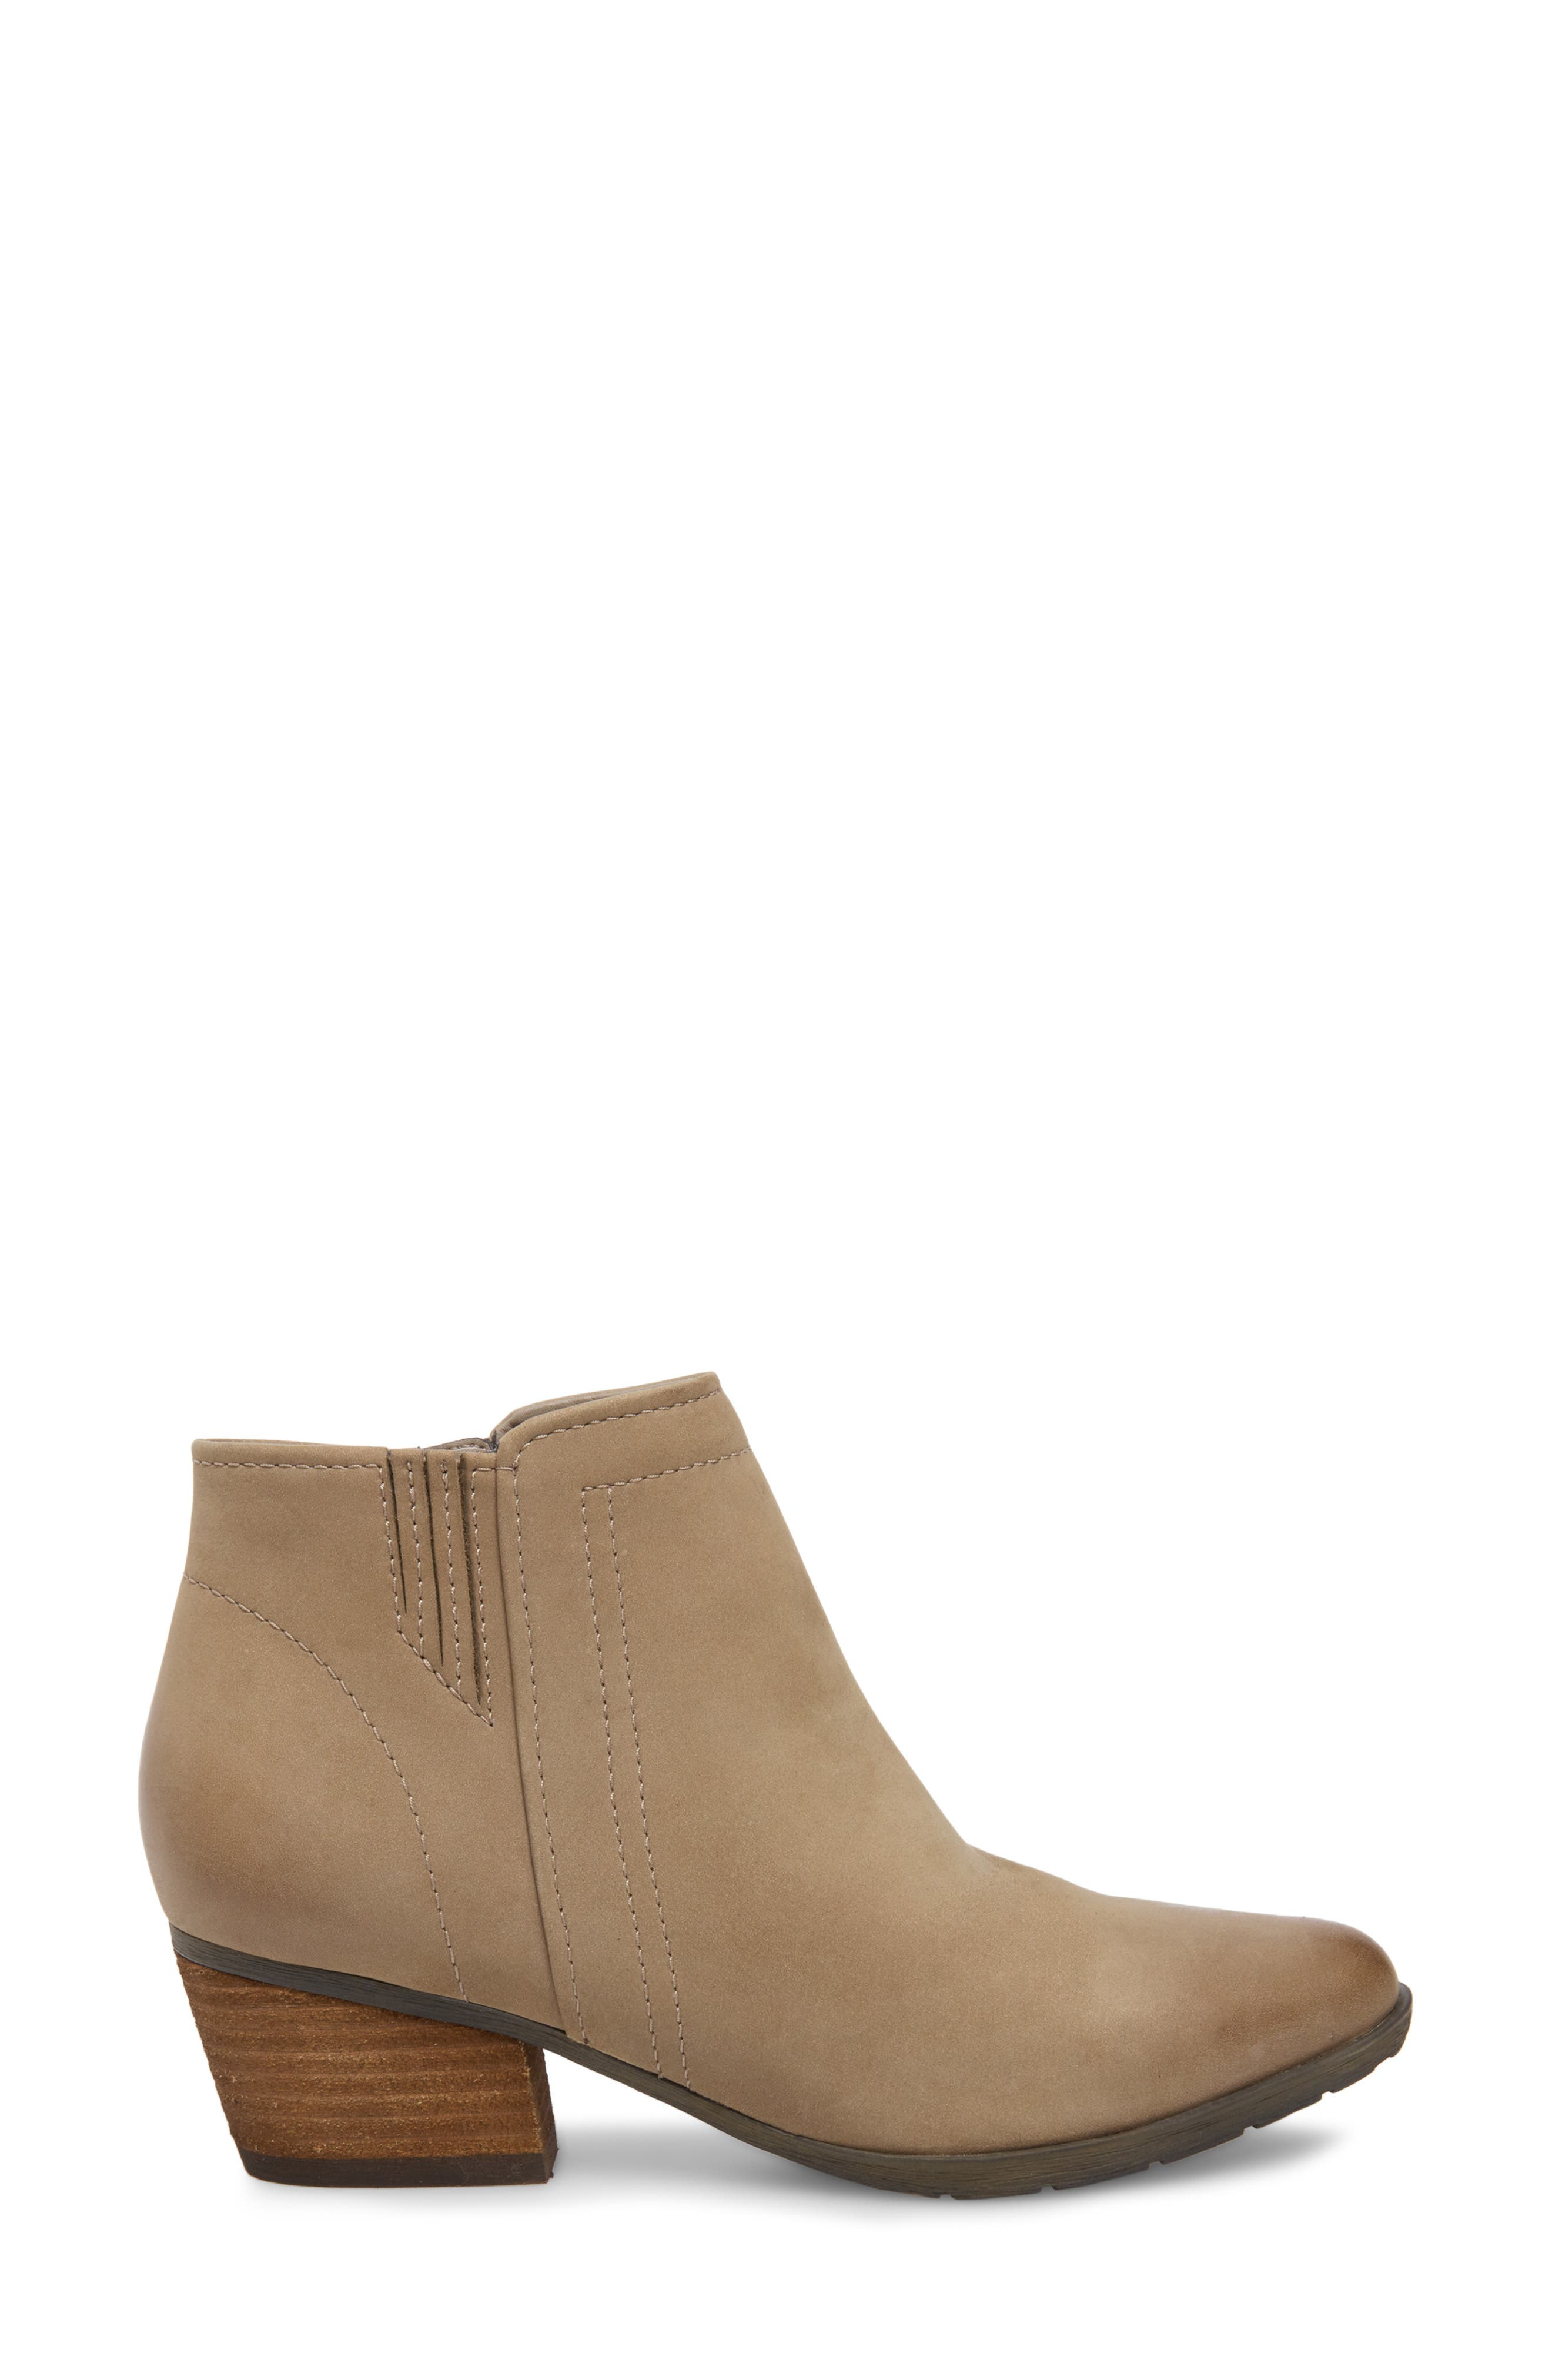 'Valli' Waterproof  Bootie,                             Alternate thumbnail 3, color,                             MUSHROOM NUBUCK